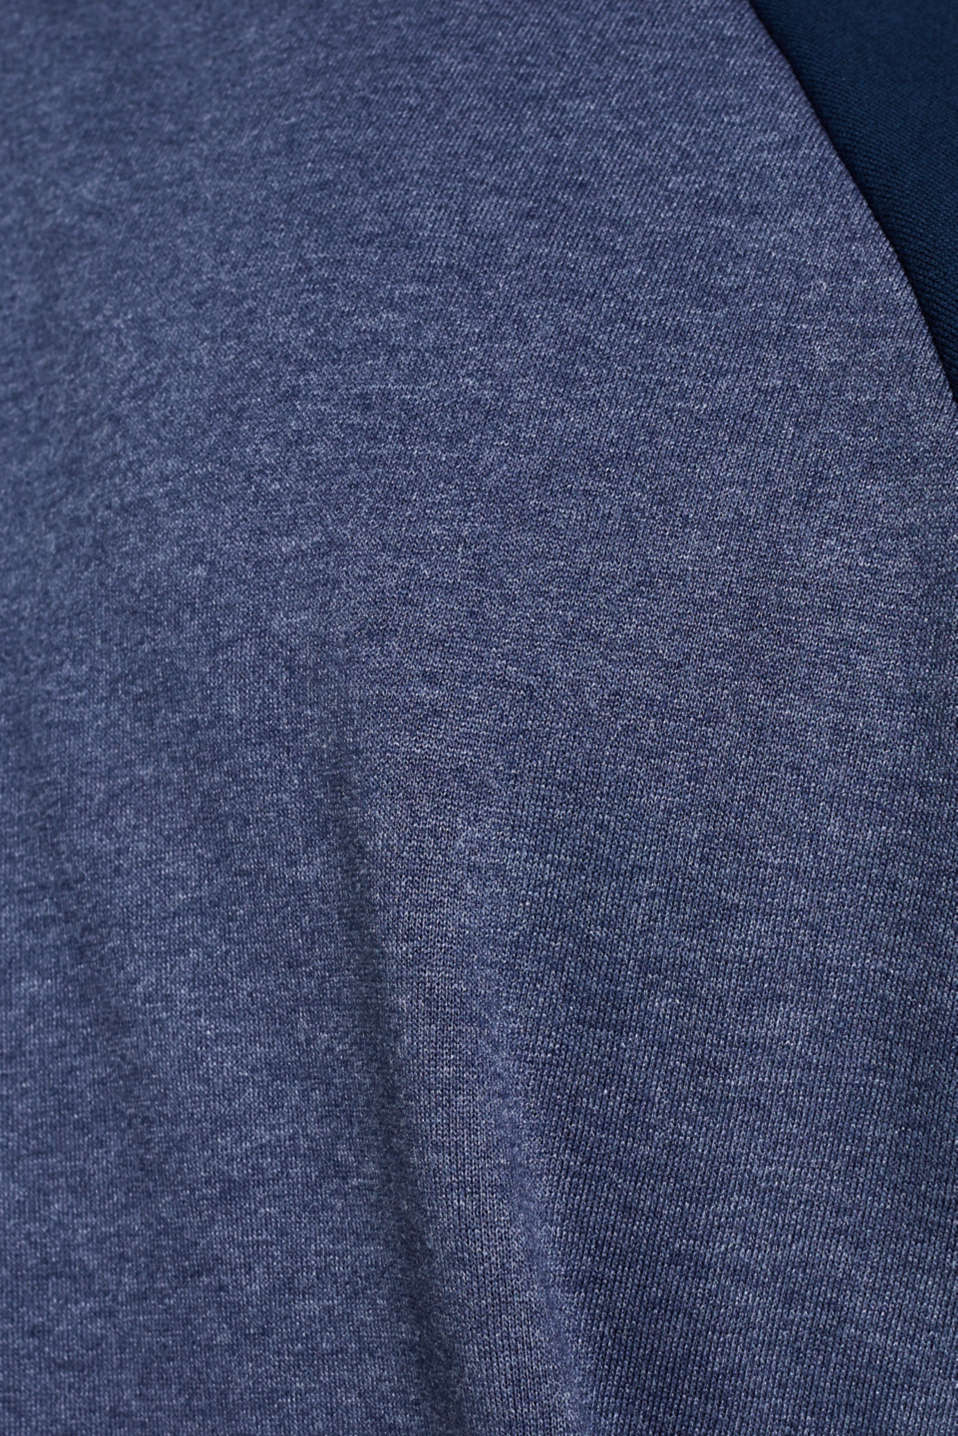 Sweatshirt with a neon logo and organic cotton, NAVY, detail image number 5